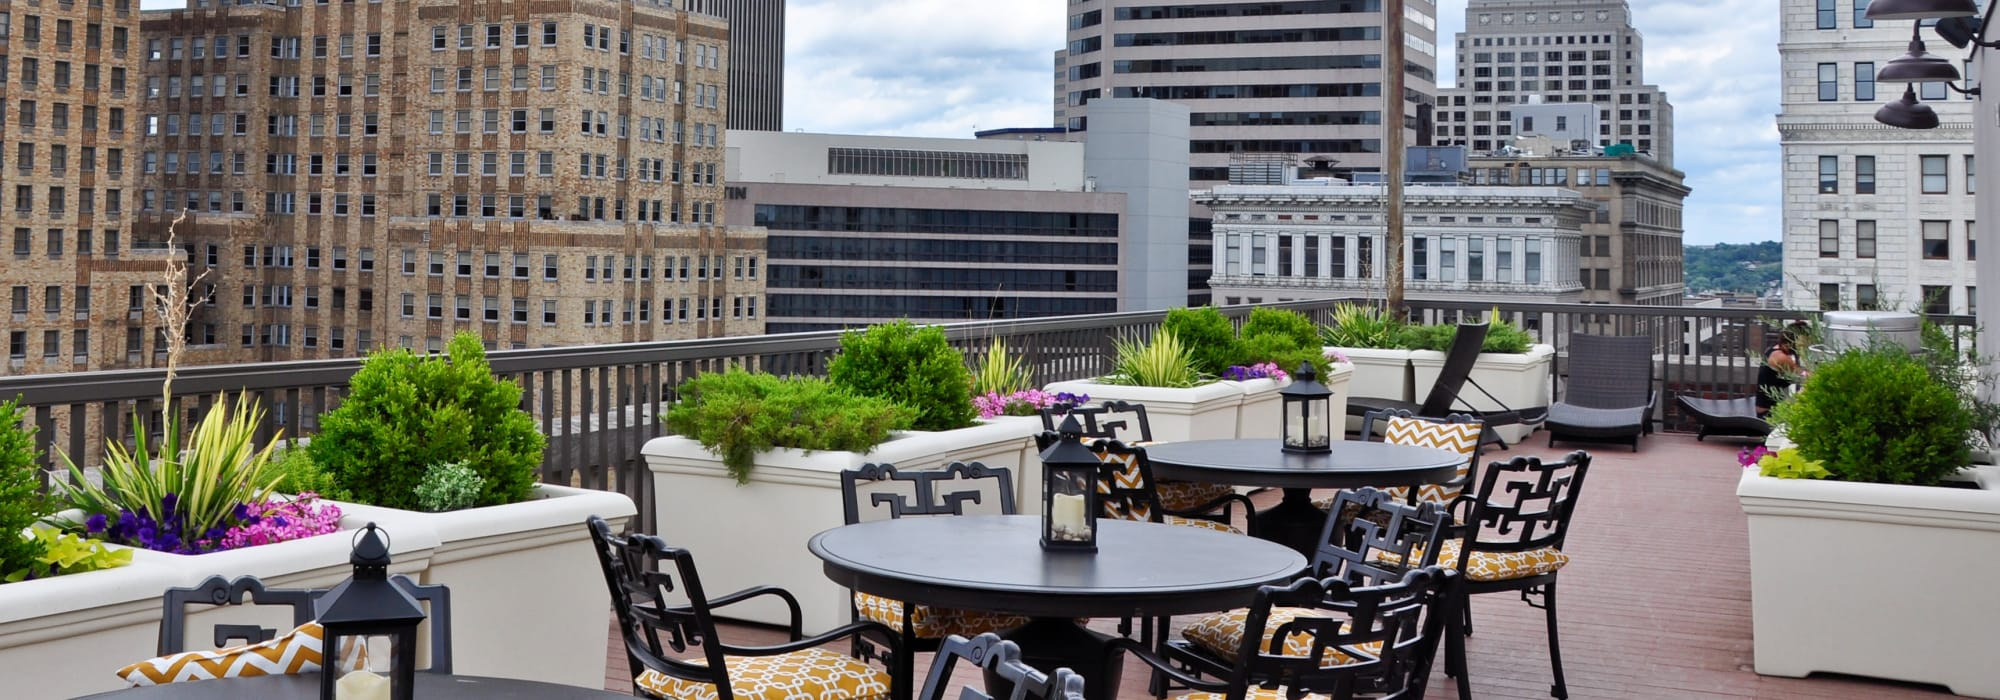 Rooftop at The Reserve at 4th and Race in Cincinnati